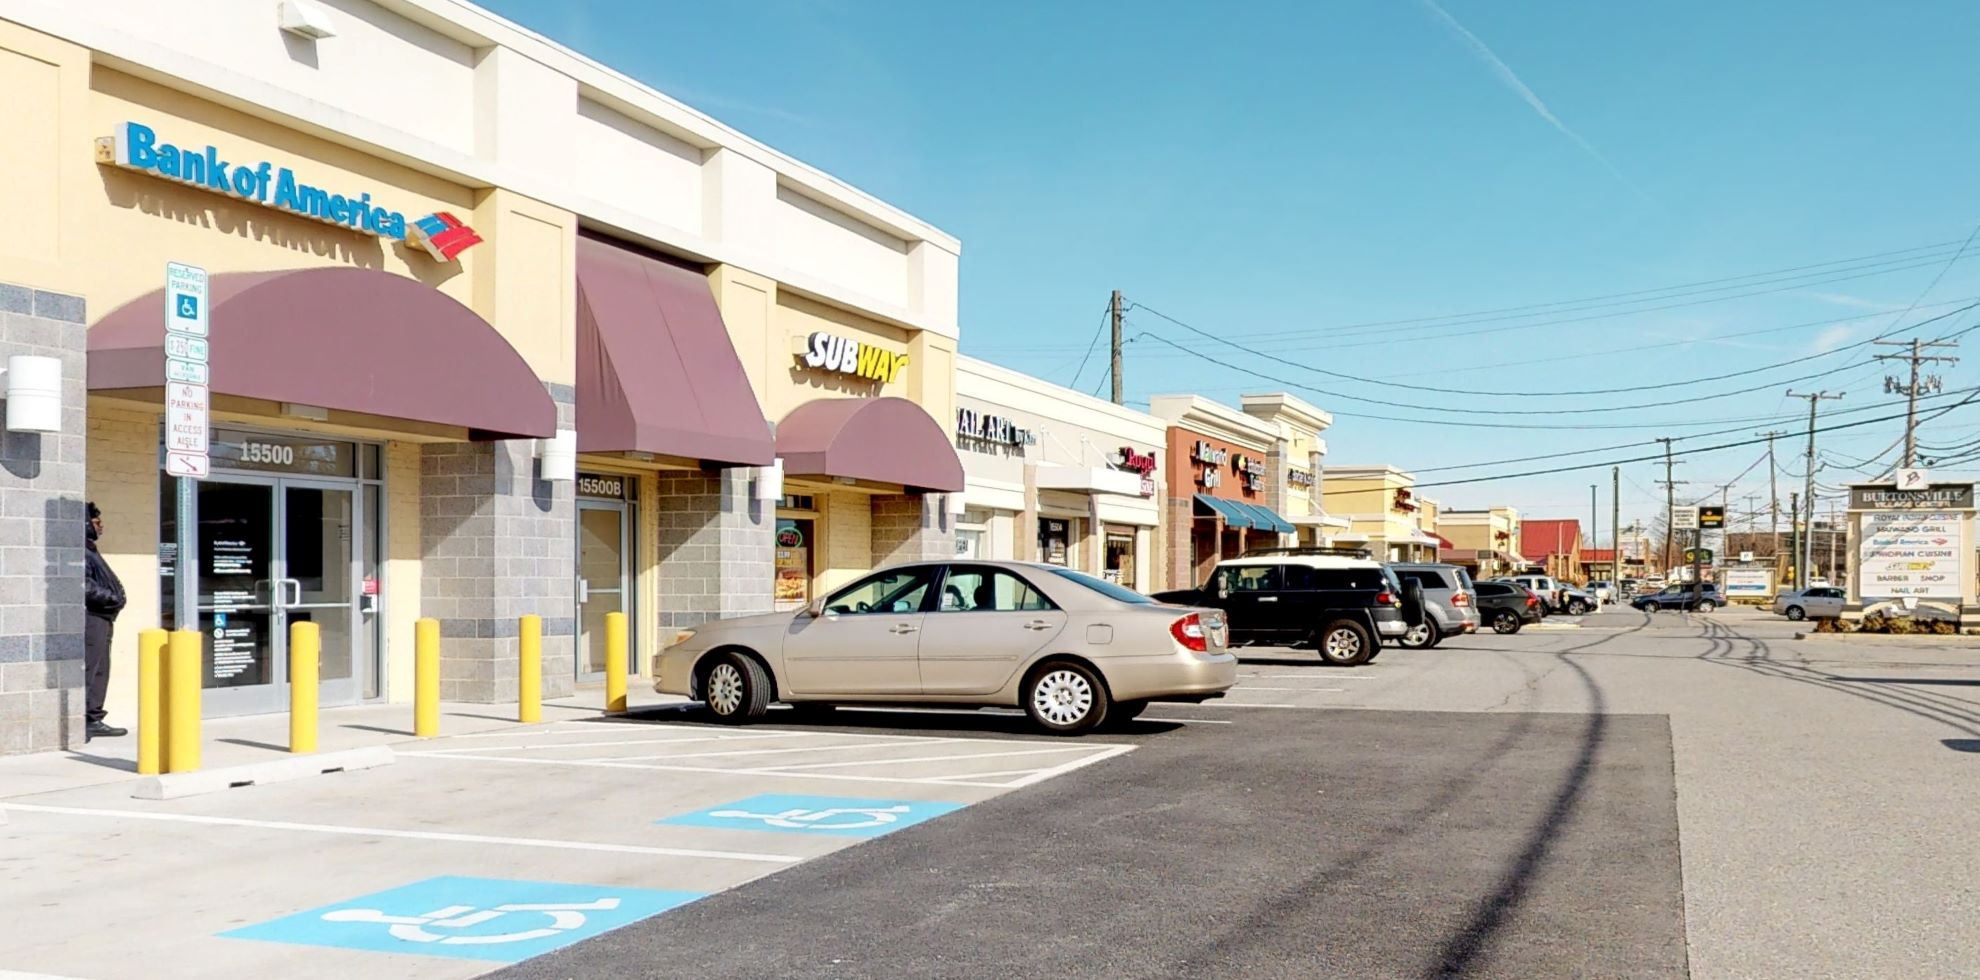 Bank of America Advanced Center with walk-up ATM | 15500 Old Columbia Pike, Burtonsville, MD 20866